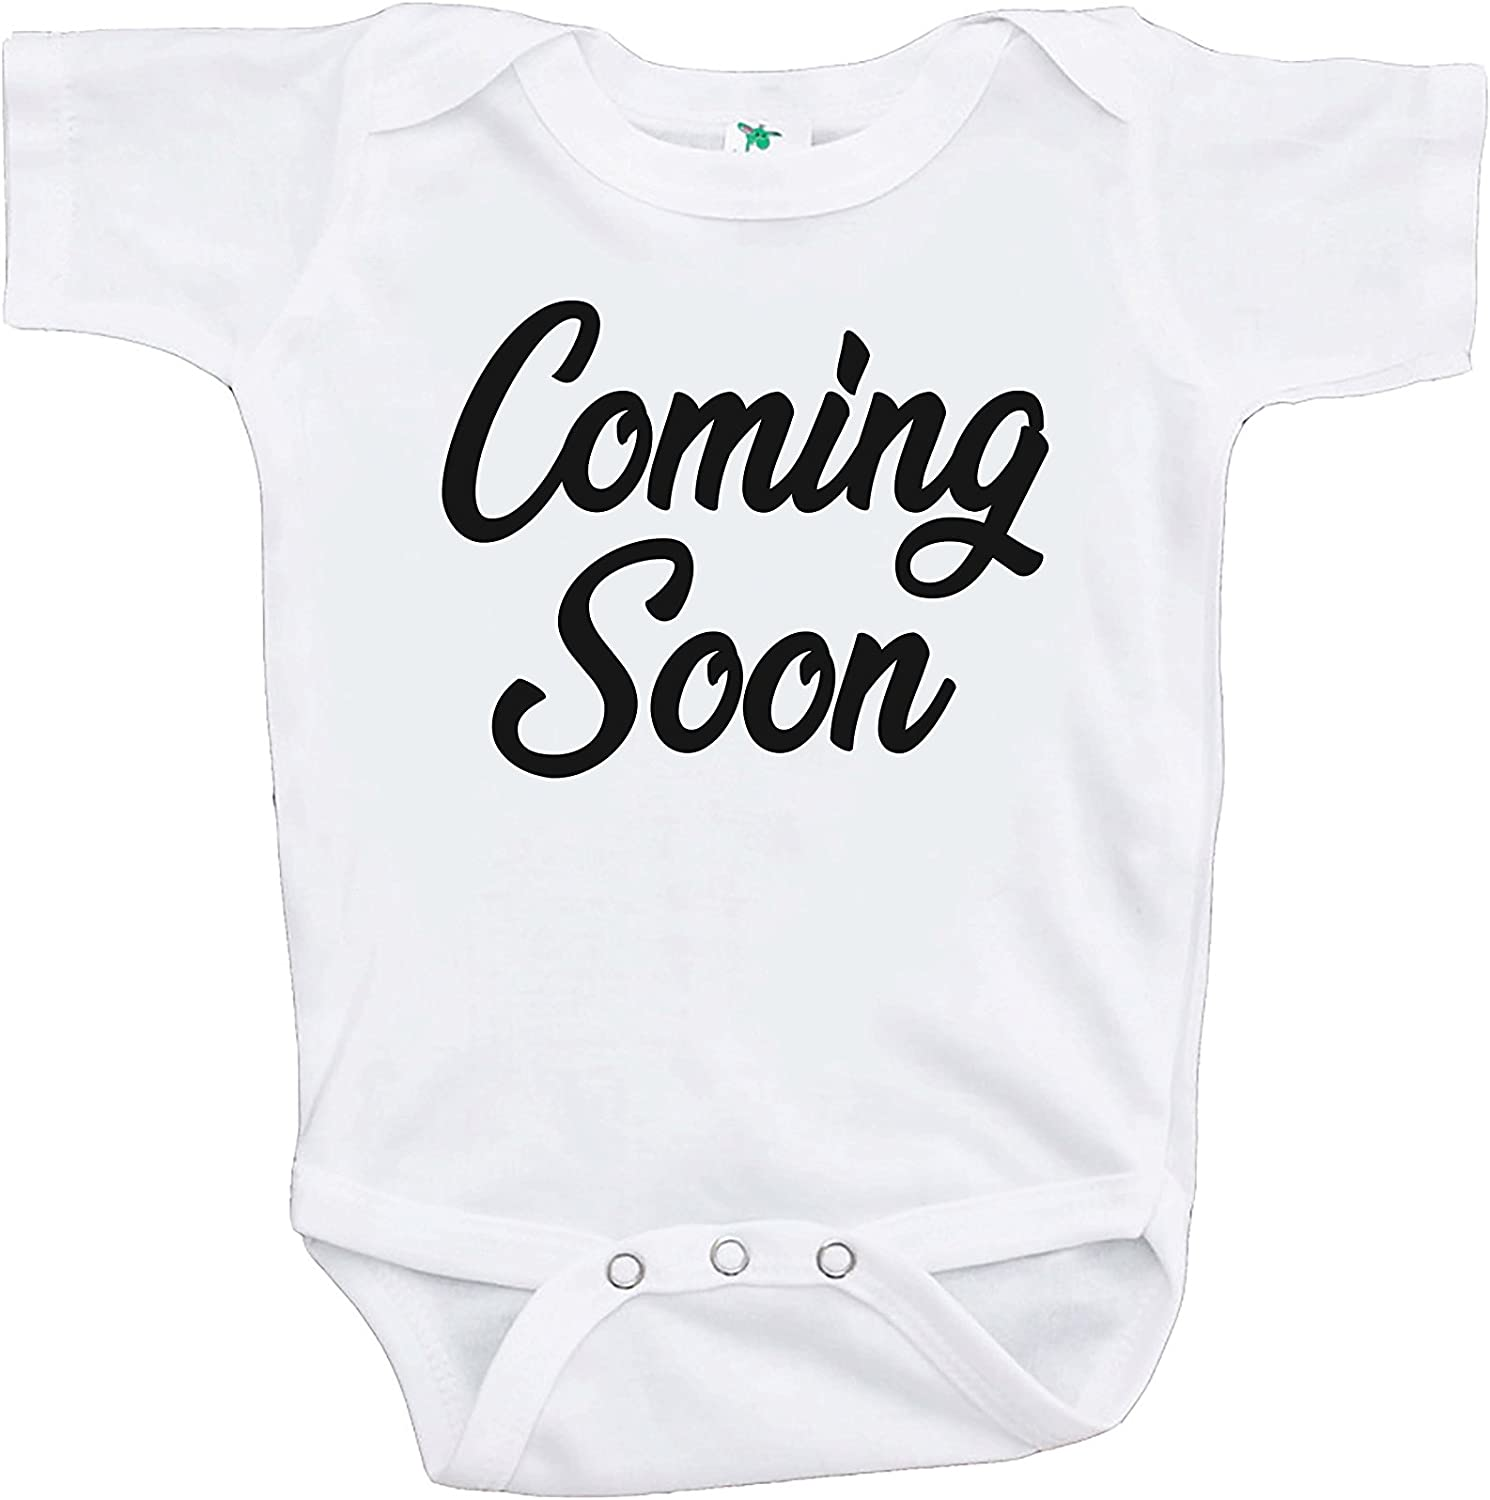 Announcement Family Husband Reveal Cute Baby One Piece Cotton Suit Romper Newborn-24 Months Coming Soon